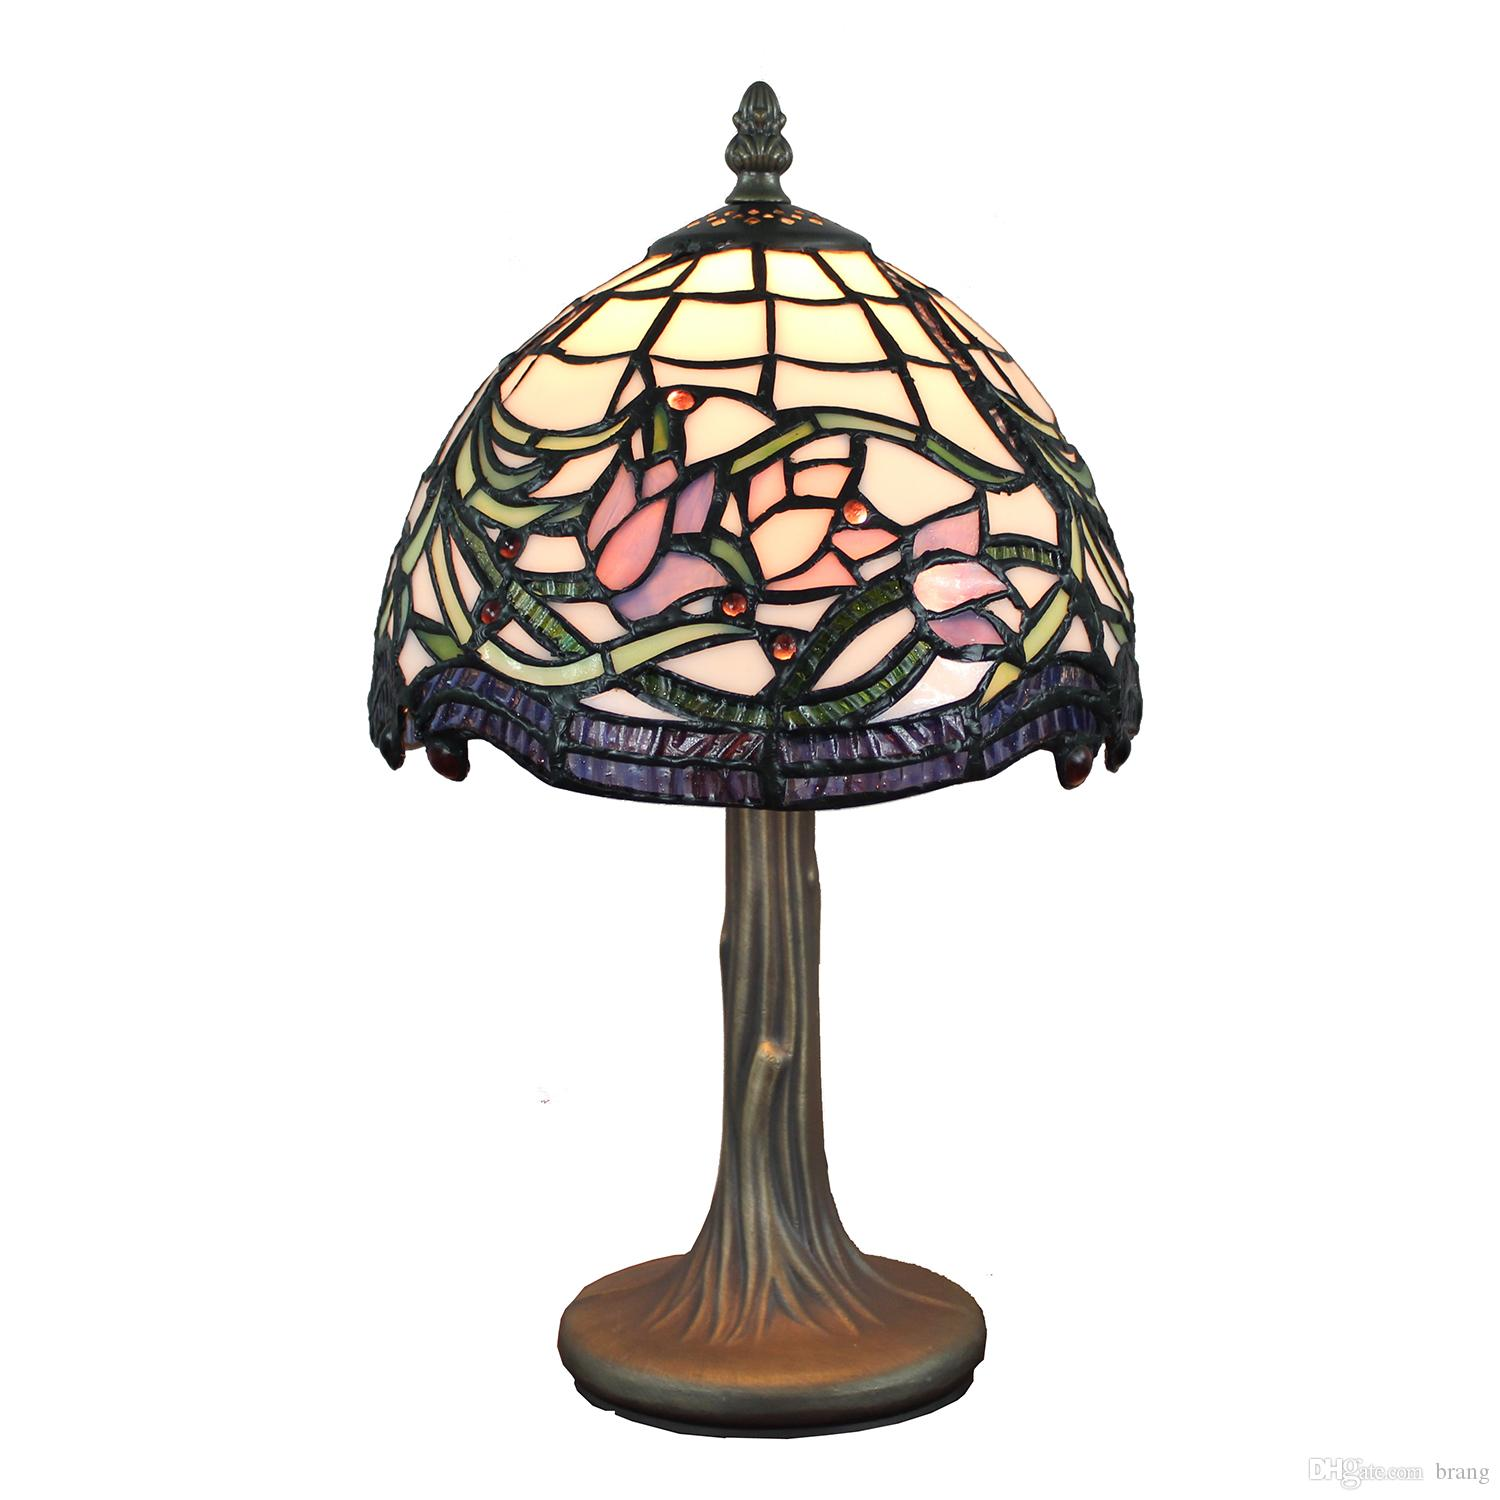 Tiffany-Style Lamp Stained Glass Table Lamp Hand Crafted Wild Vine Lotus Design Accent Lamp Bedside Table Light